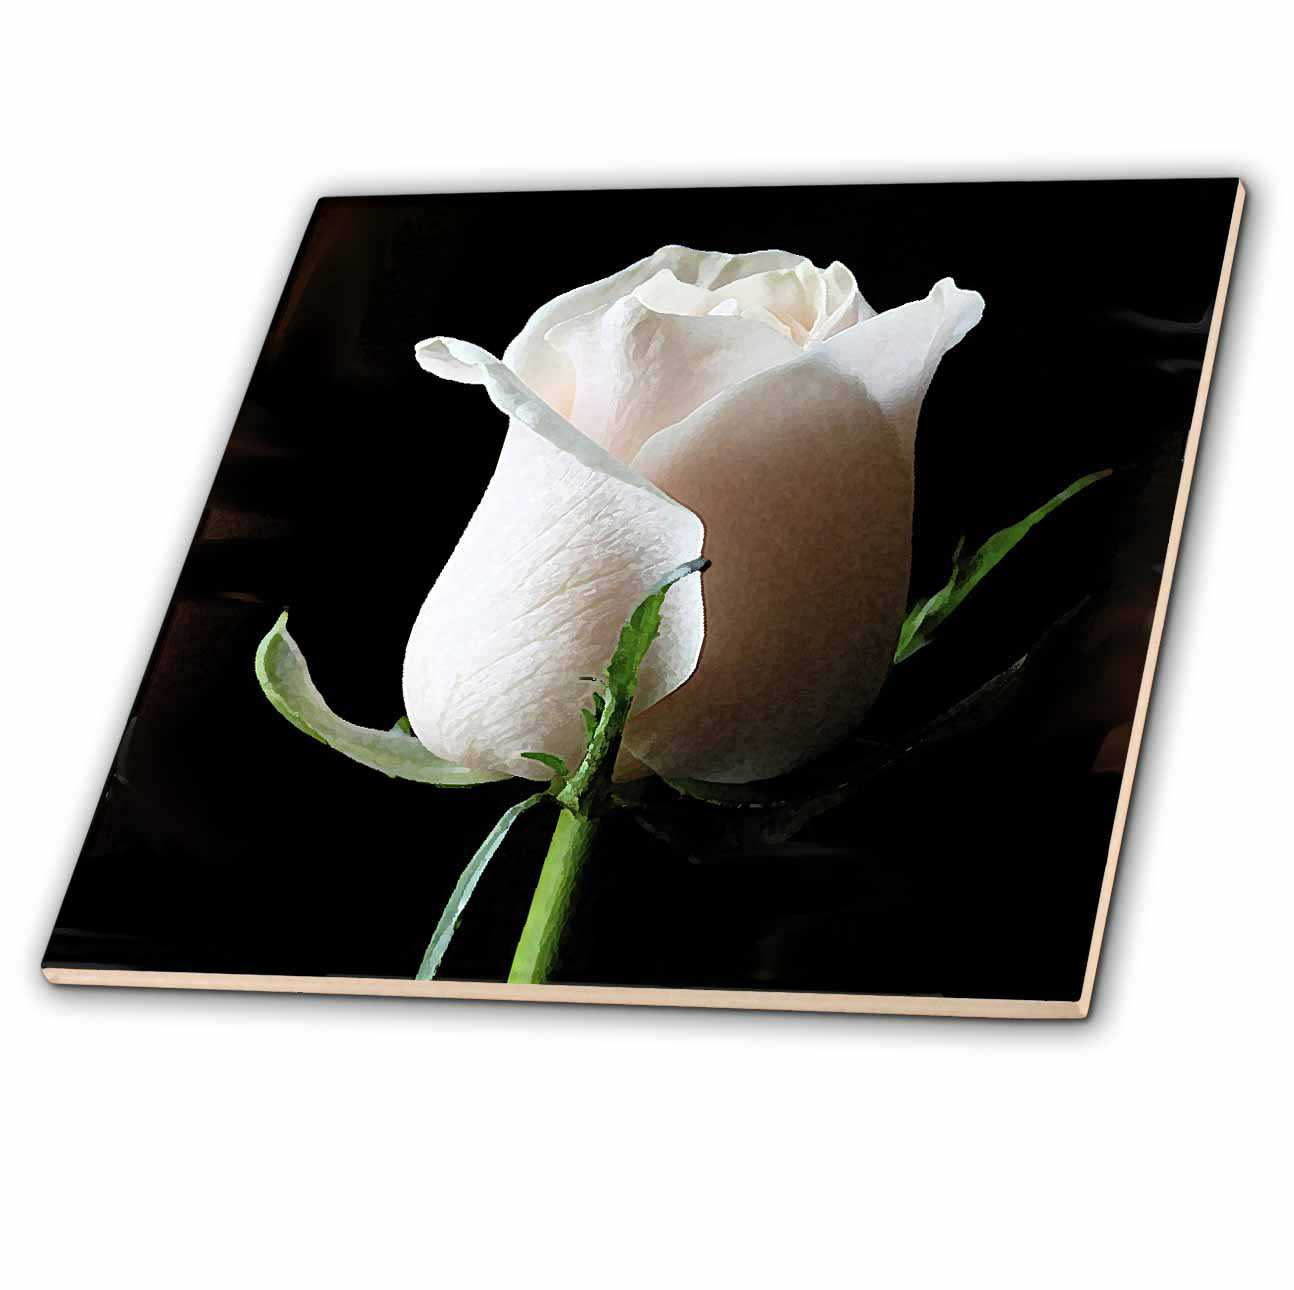 3dRose White Rose - Ceramic Tile, 6-inch